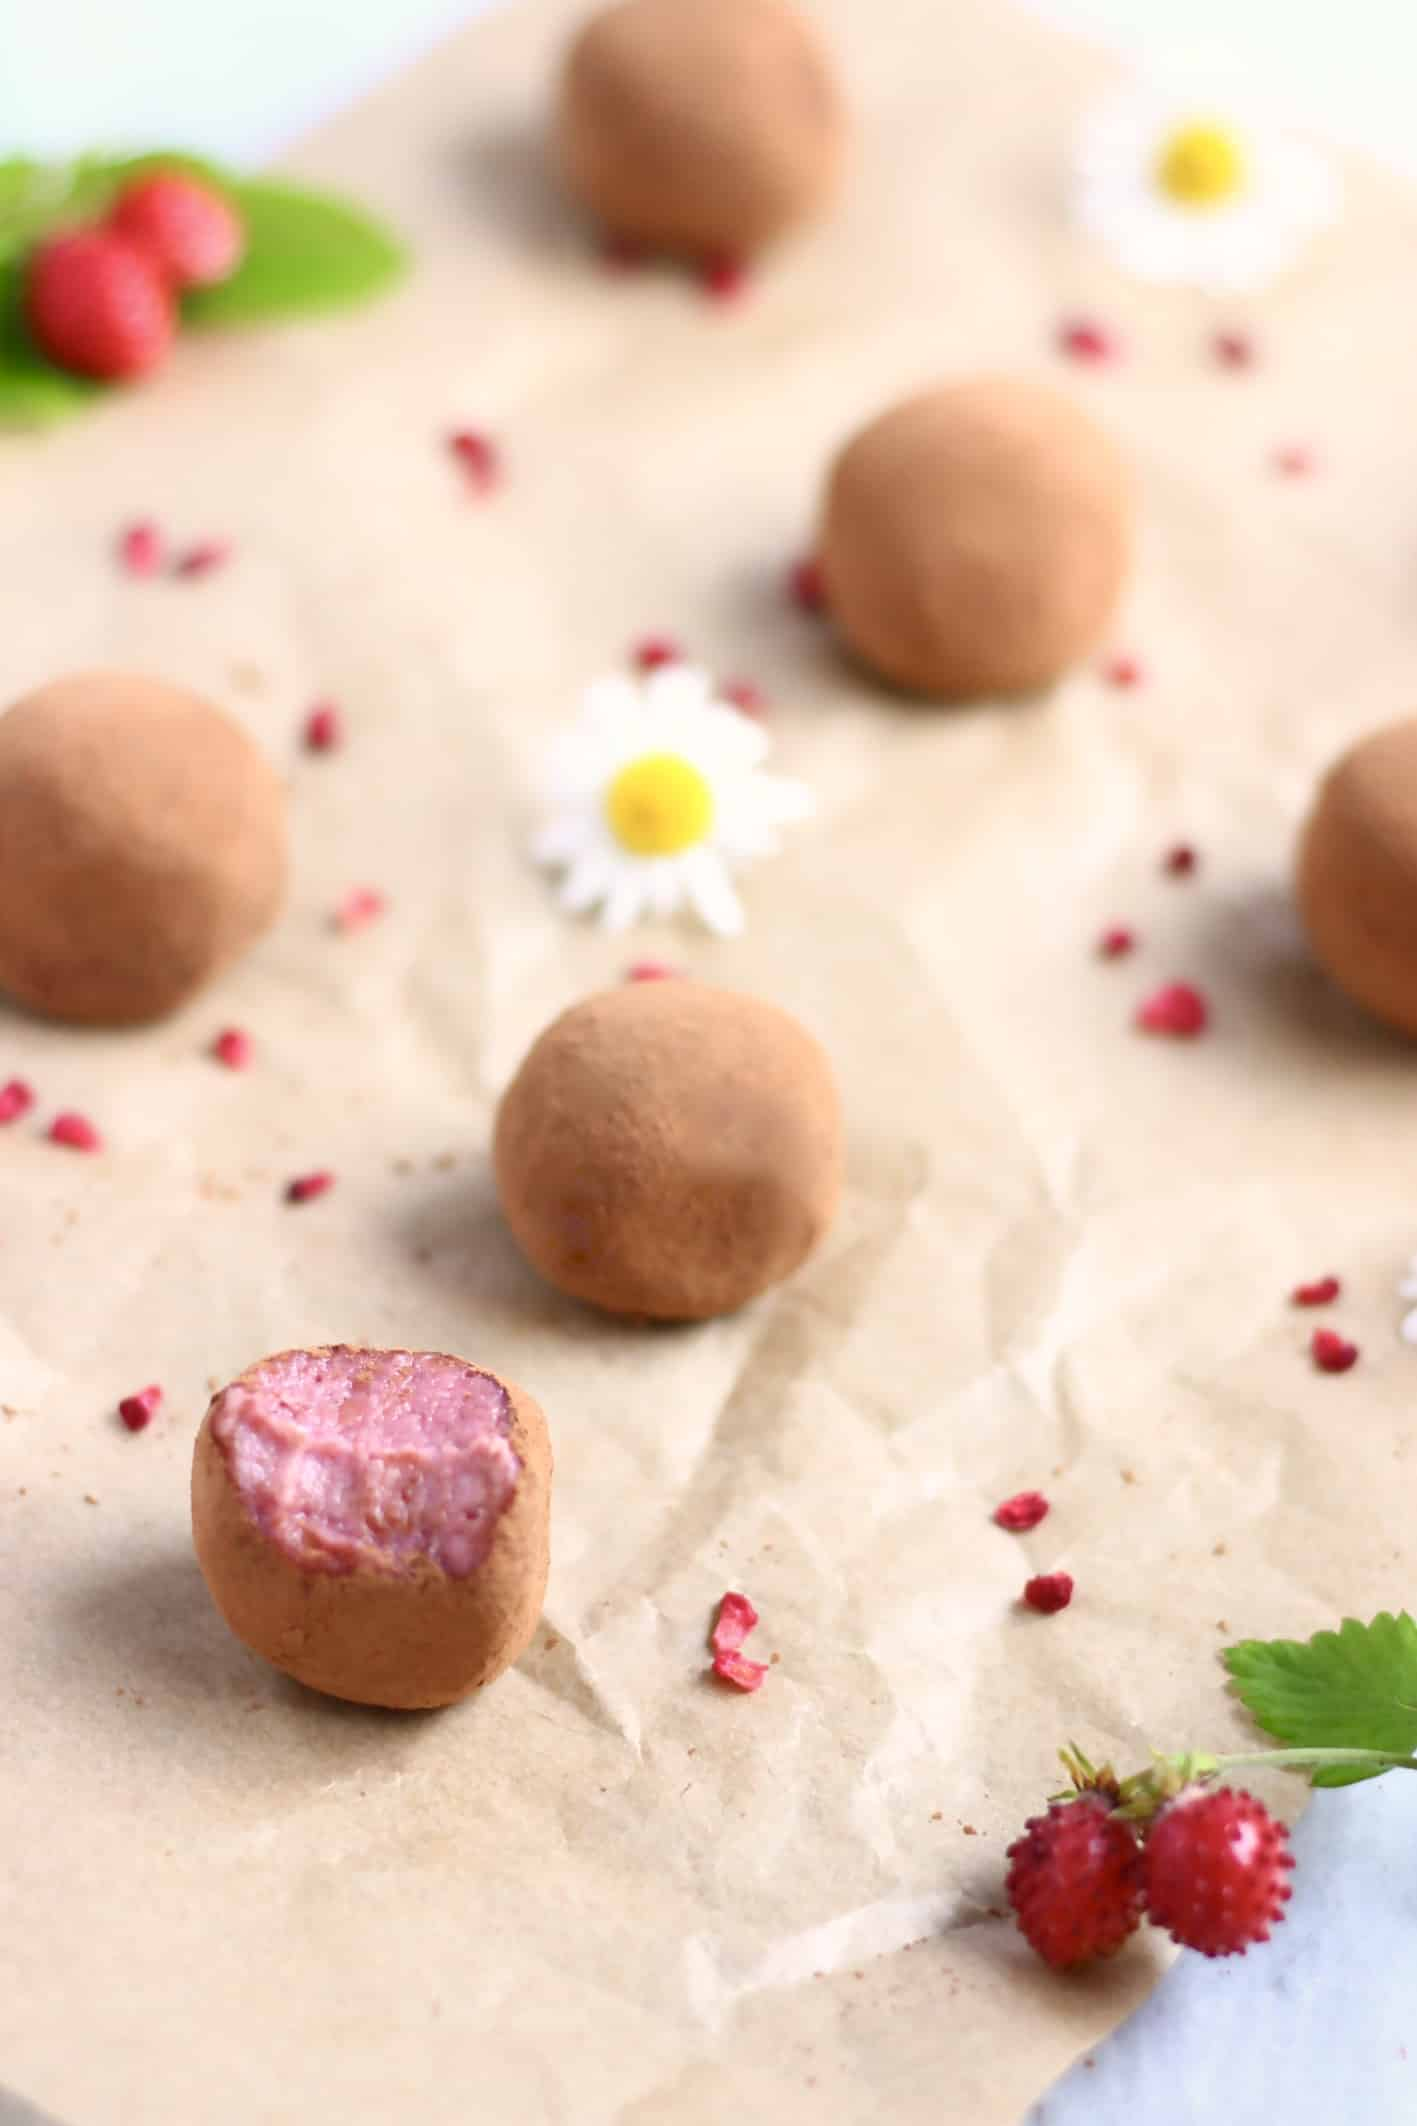 Six strawberry truffles covered in cocoa powder with a mouthful taken out of one